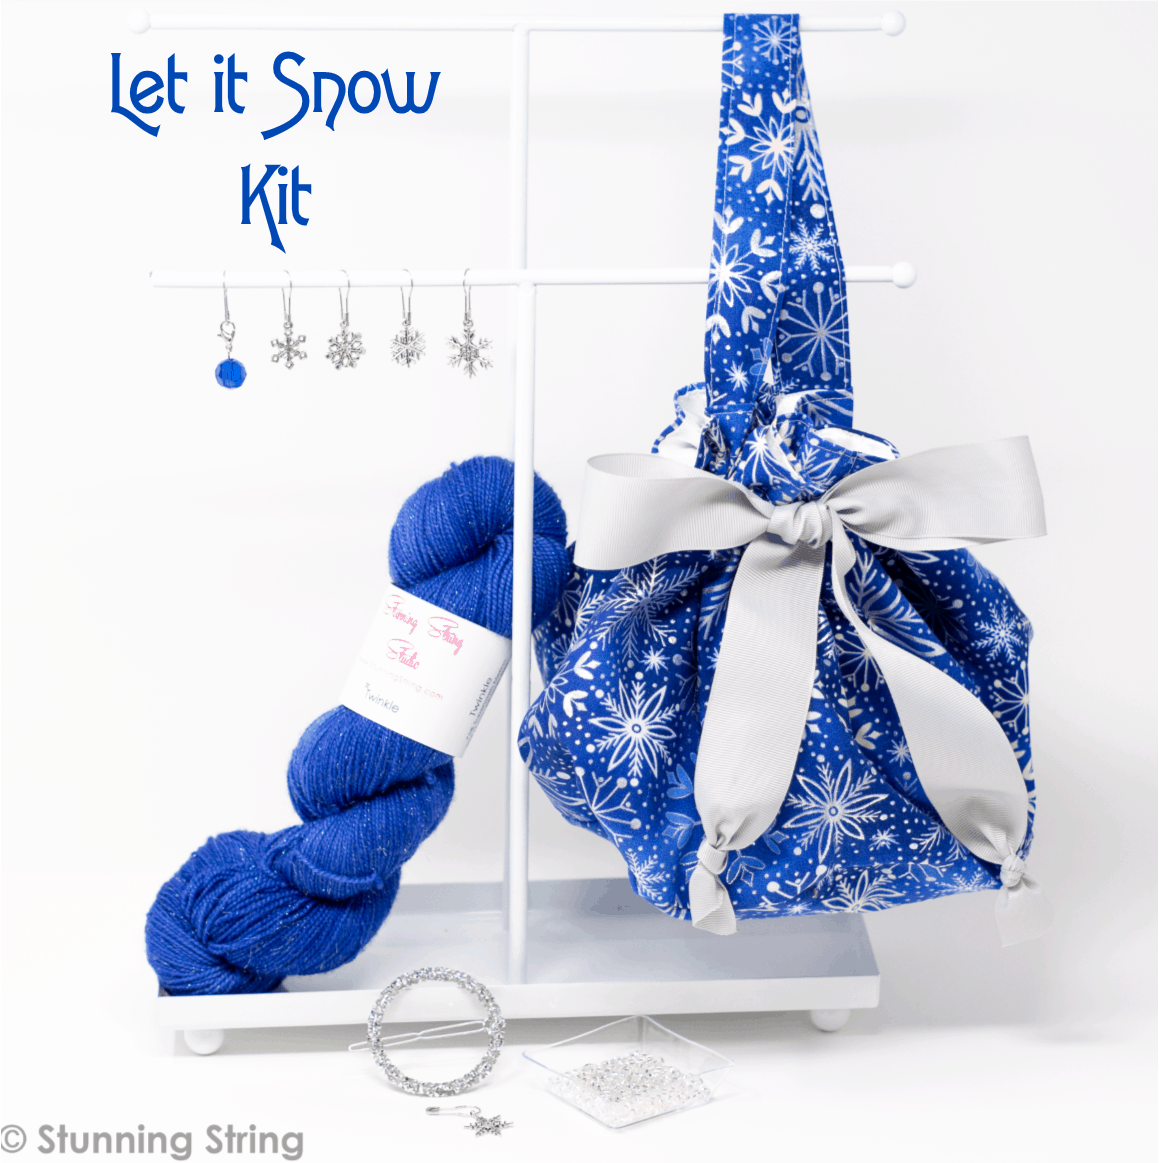 Let It Snow - Small Batch Kit